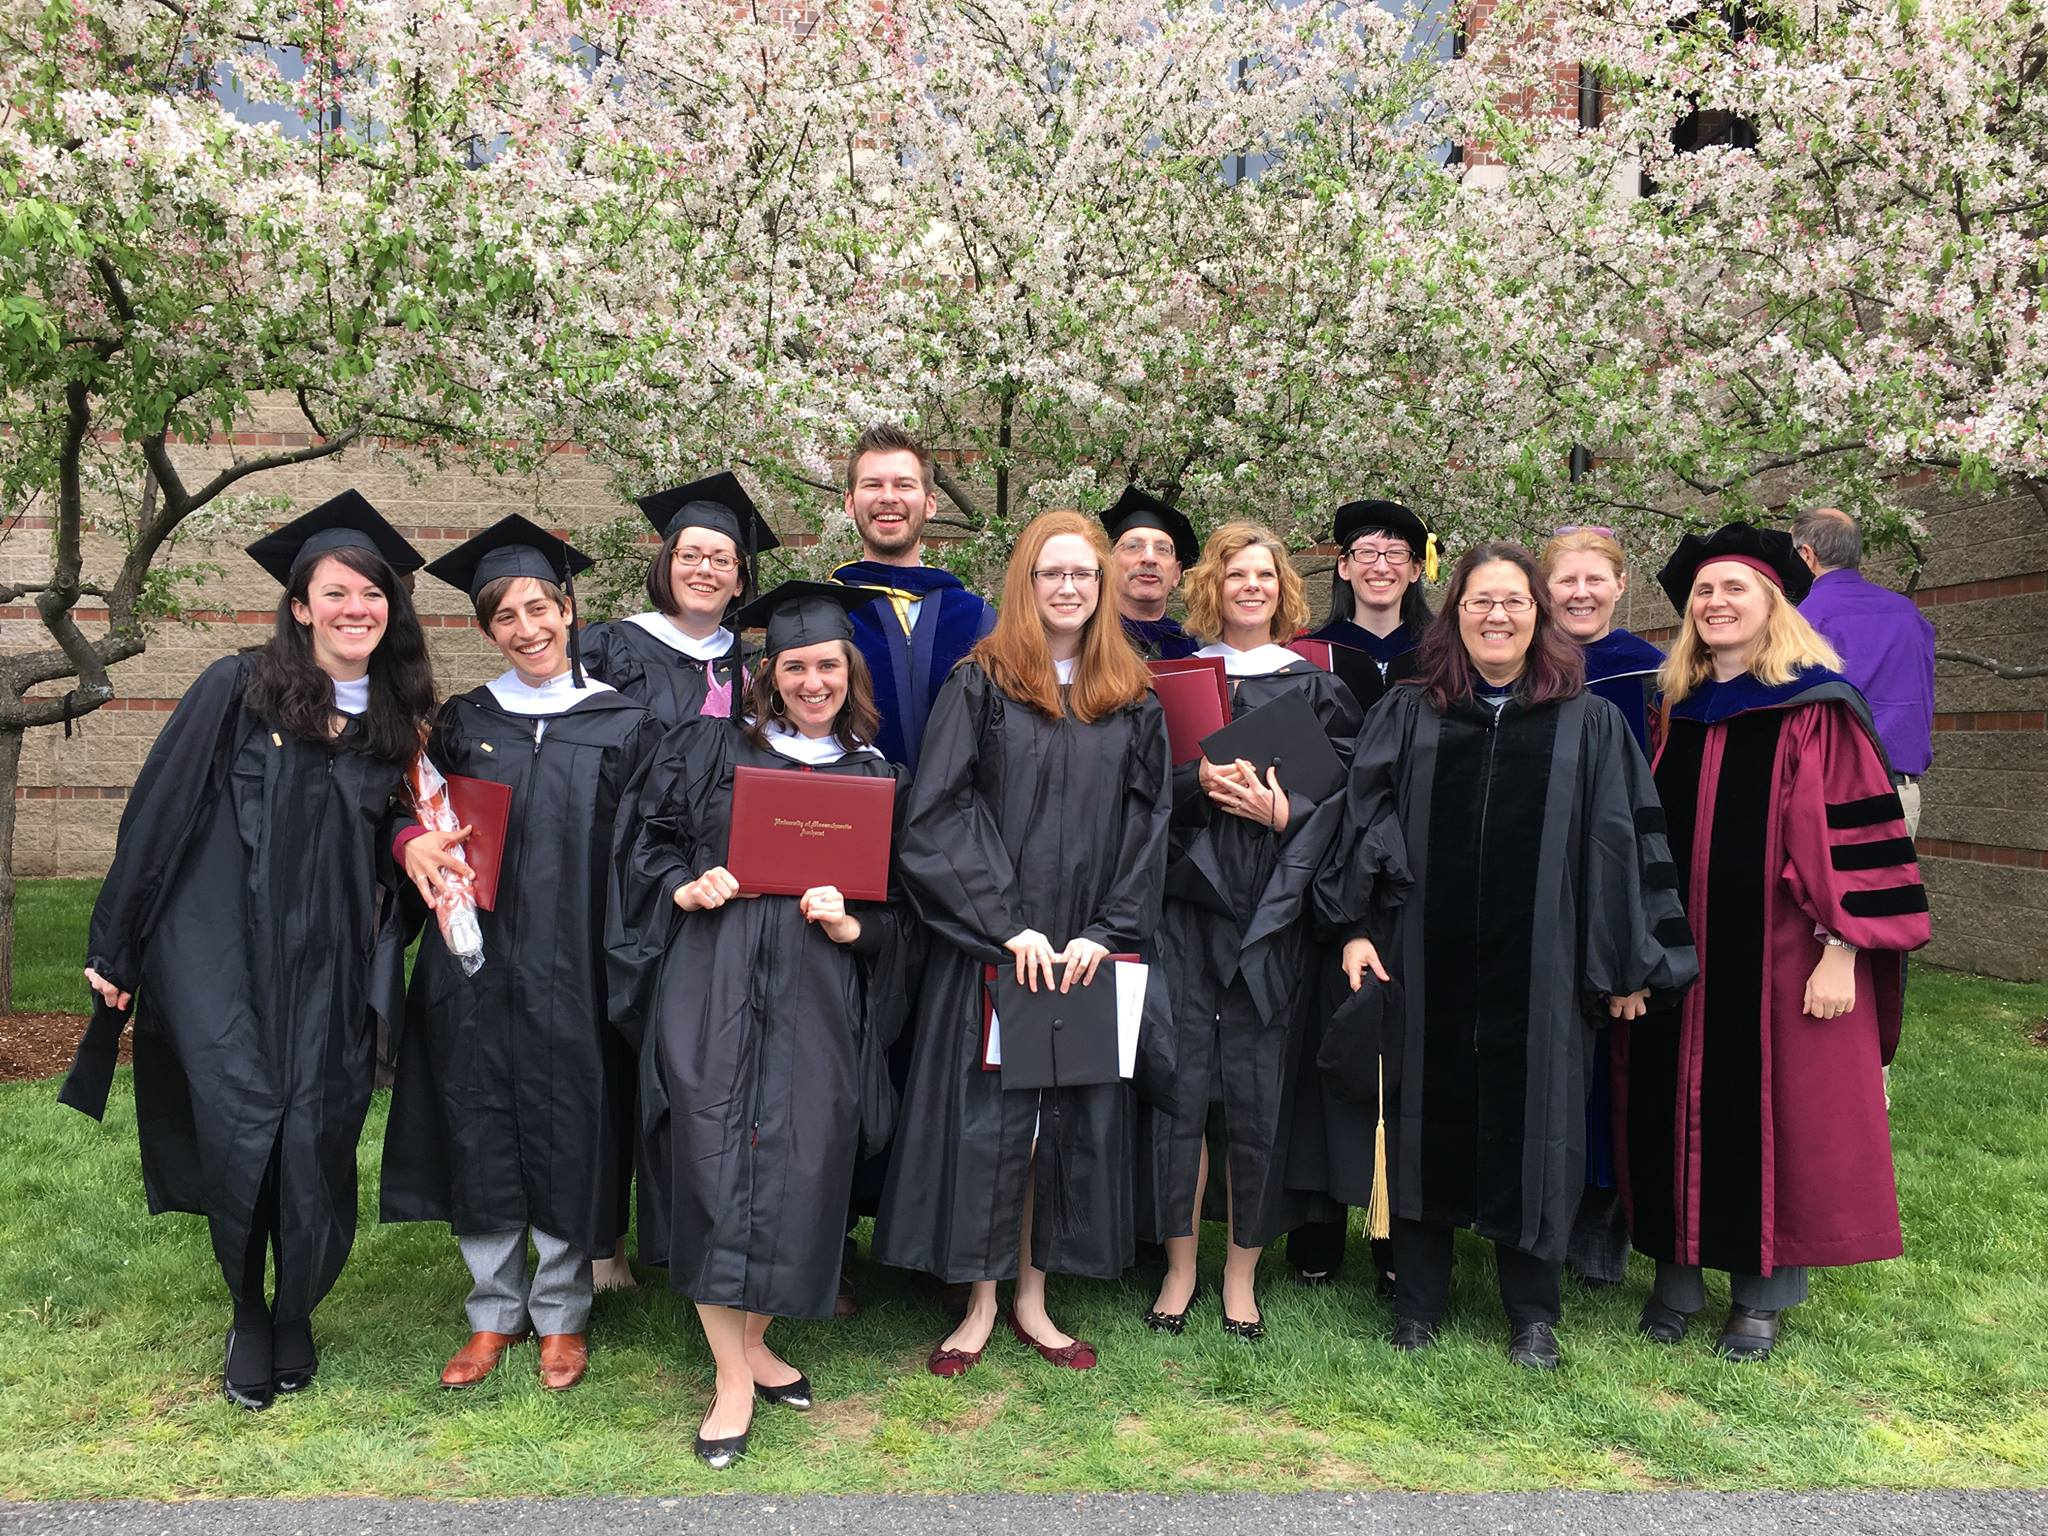 Members of the graduating MA and Ph.D. class of 2016 with faculty